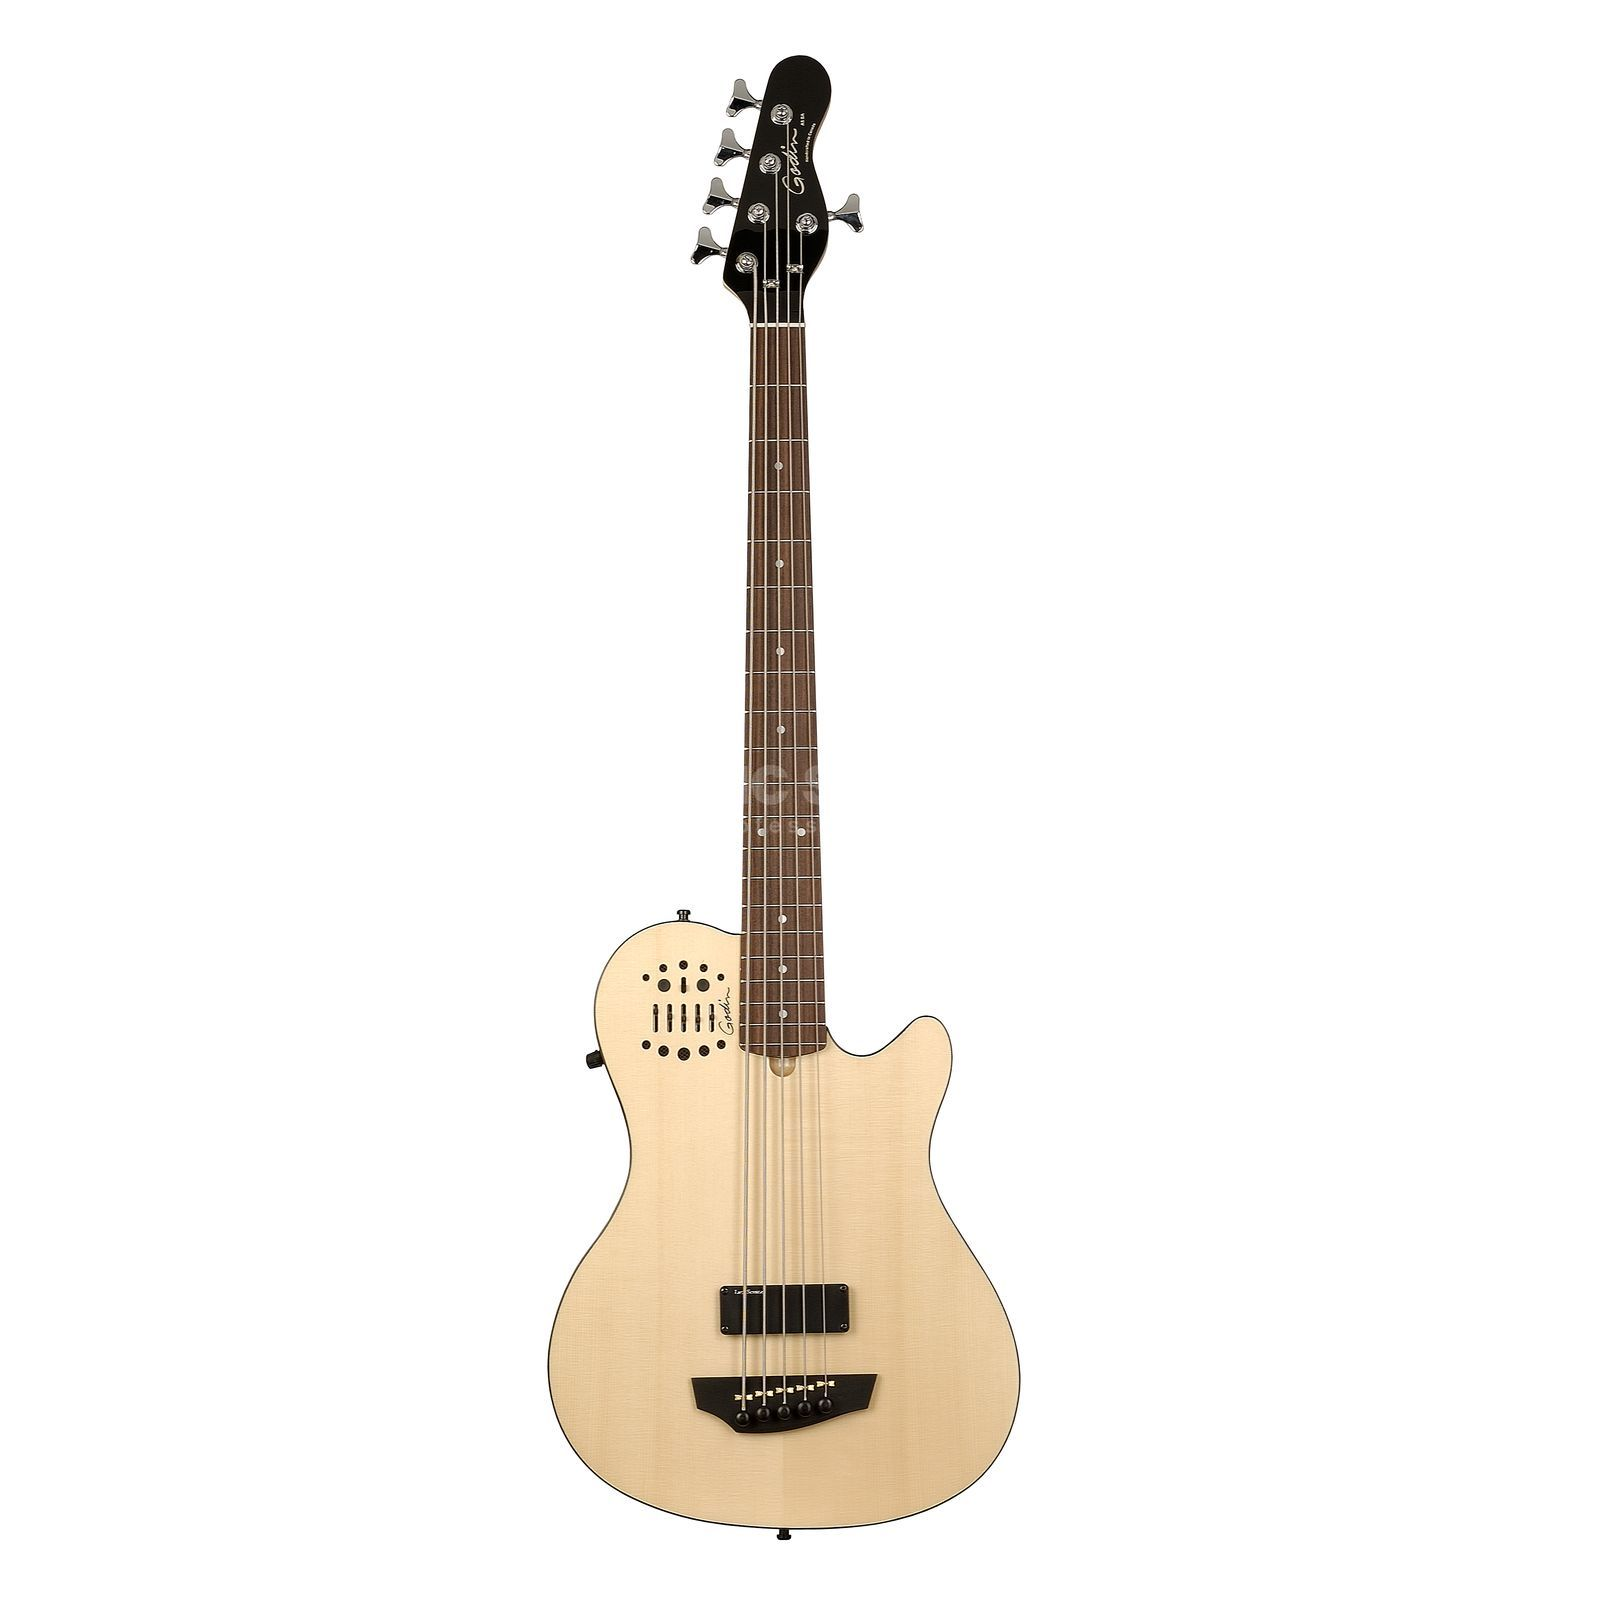 Godin A5 Ultra Fretted SA Natural Semi- Gloss Image du produit